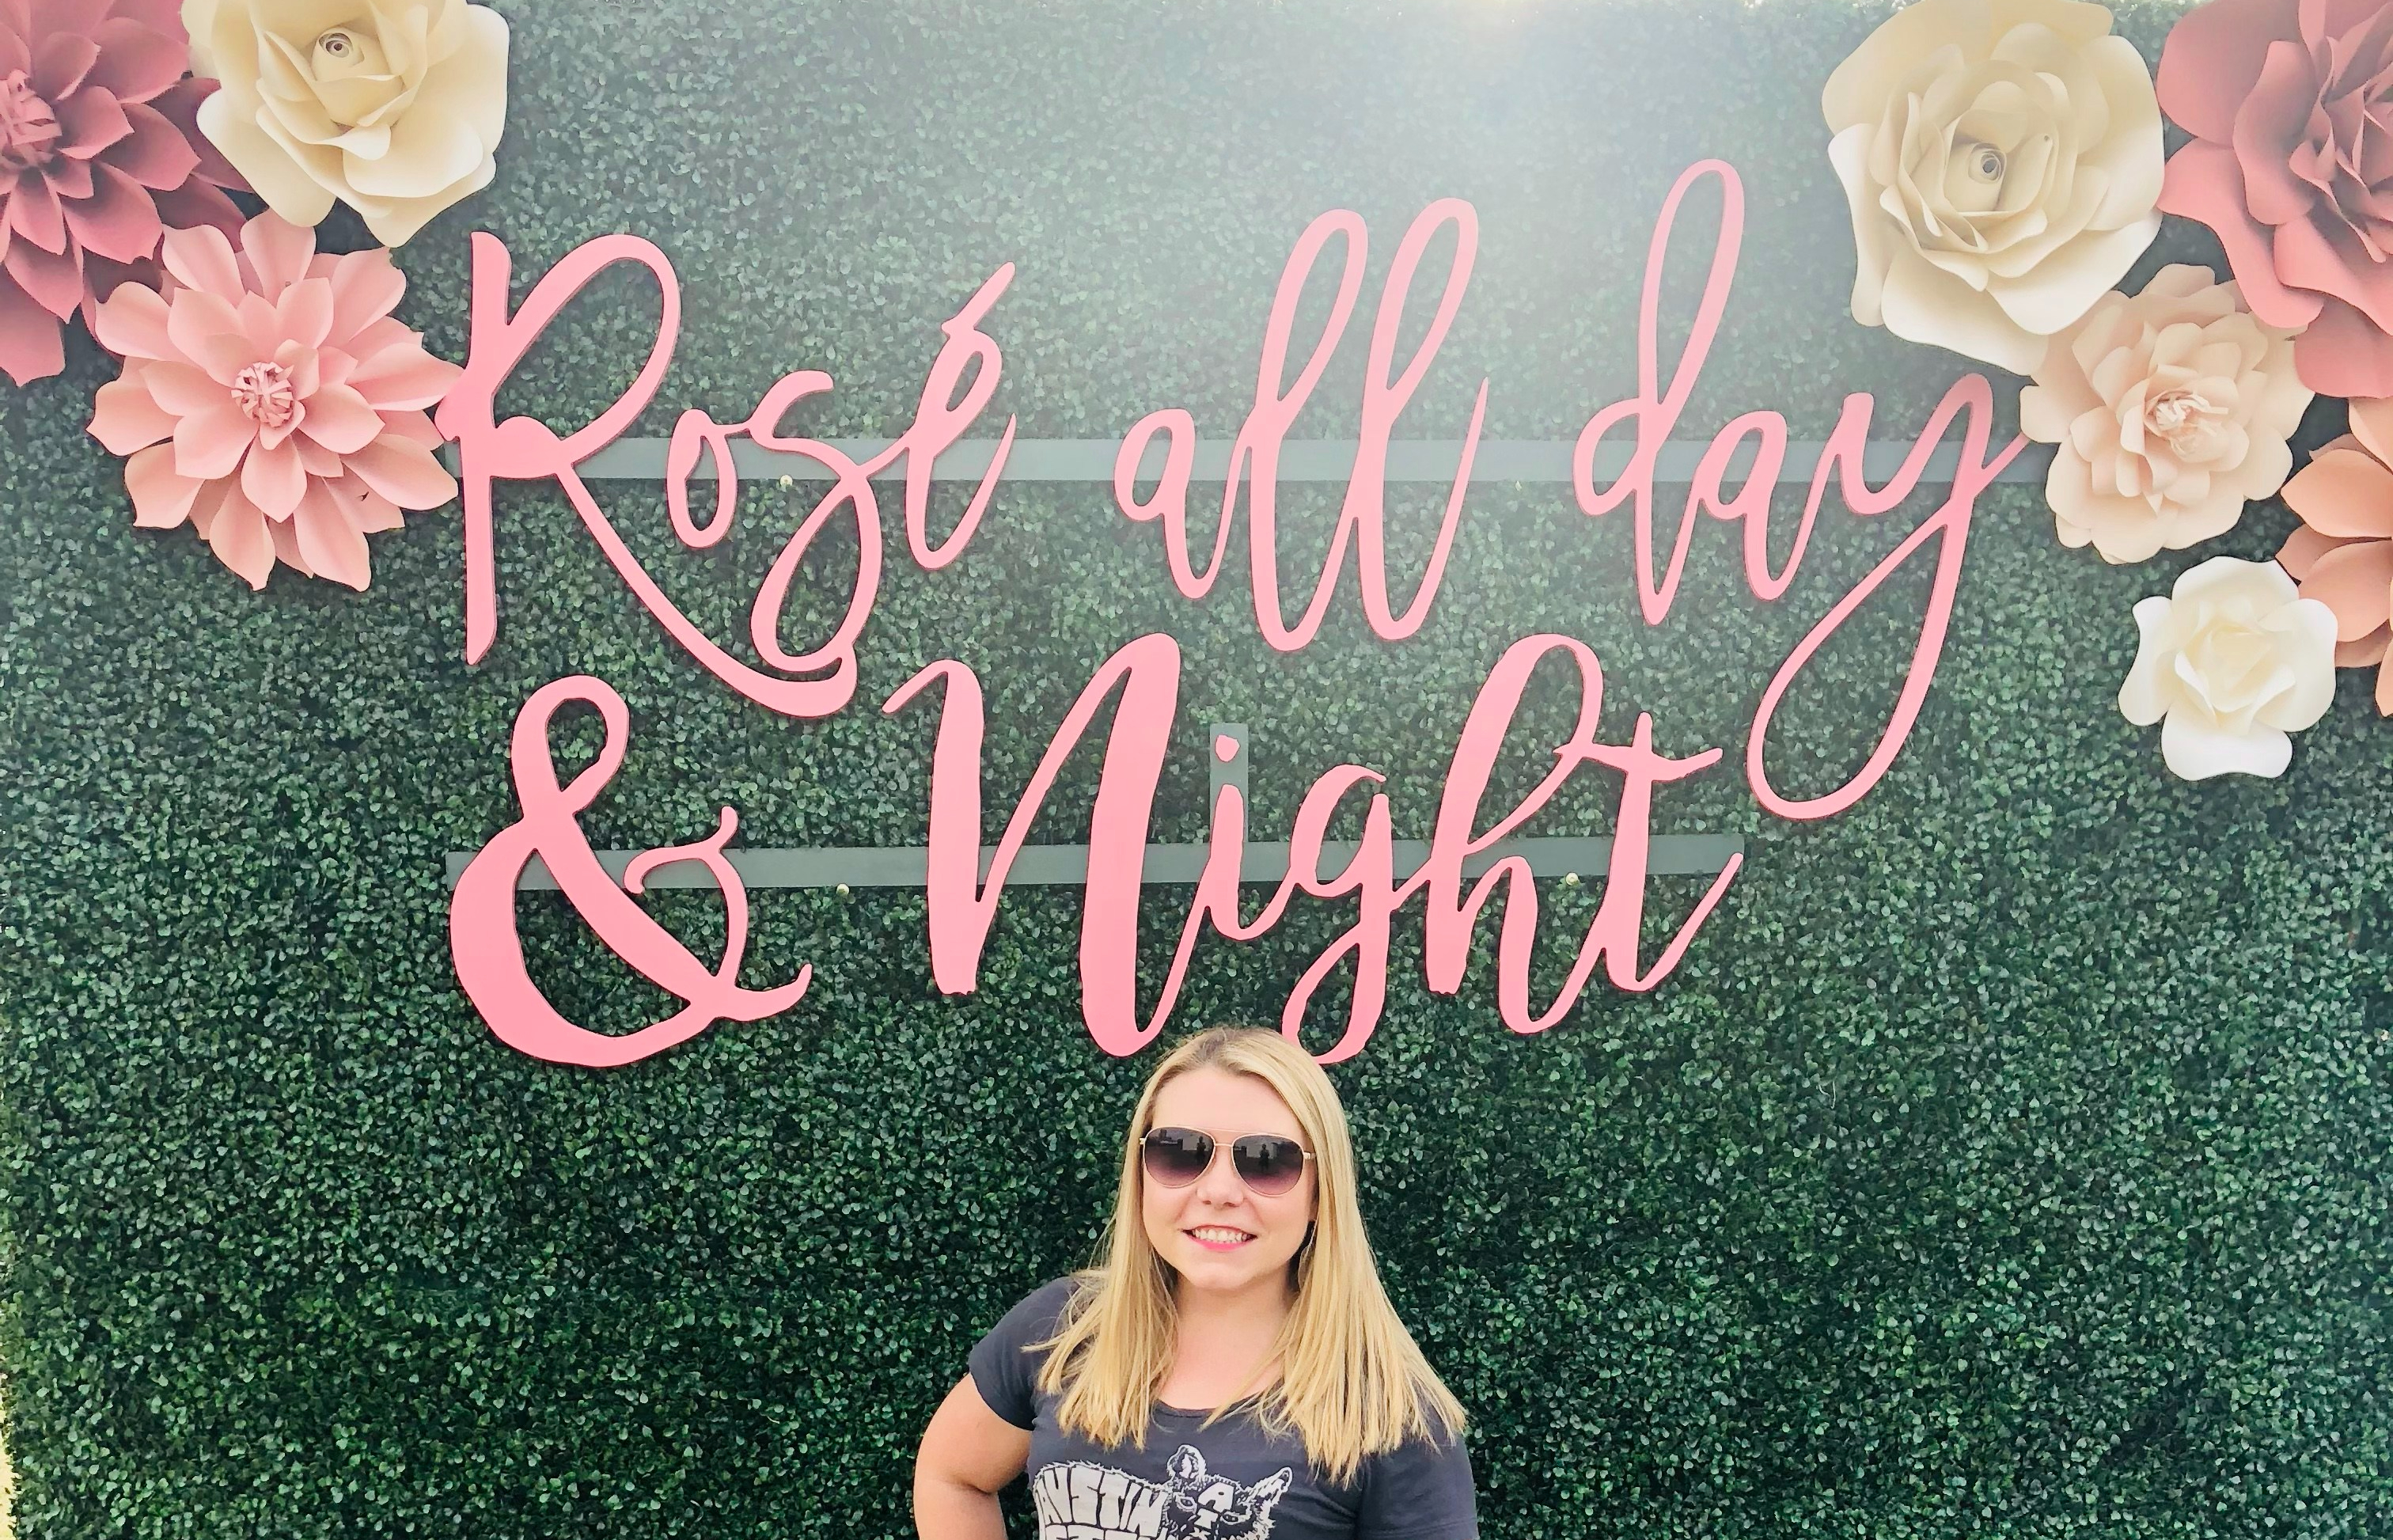 Jenn standing in front of Rosé All Day & Night greenery wall